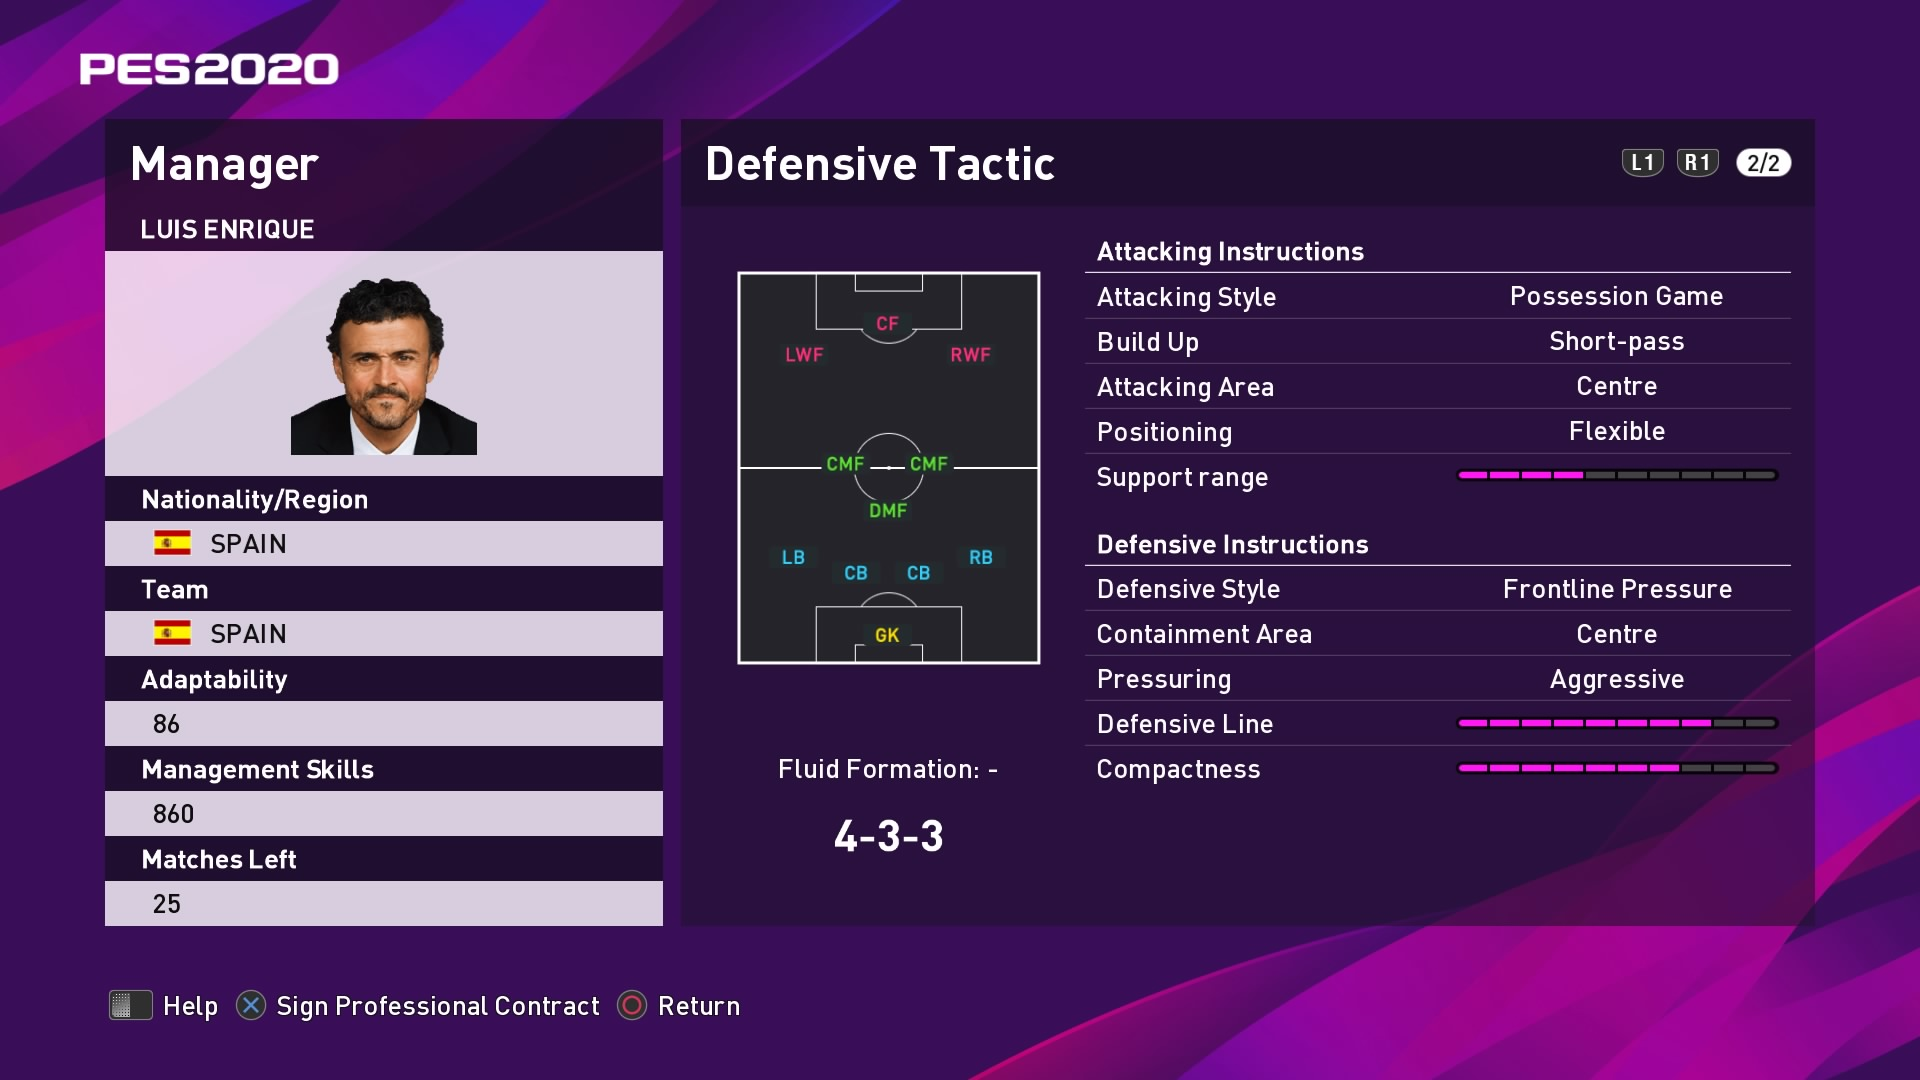 Luis Enrique Defensive Tactic in PES 2020 myClub